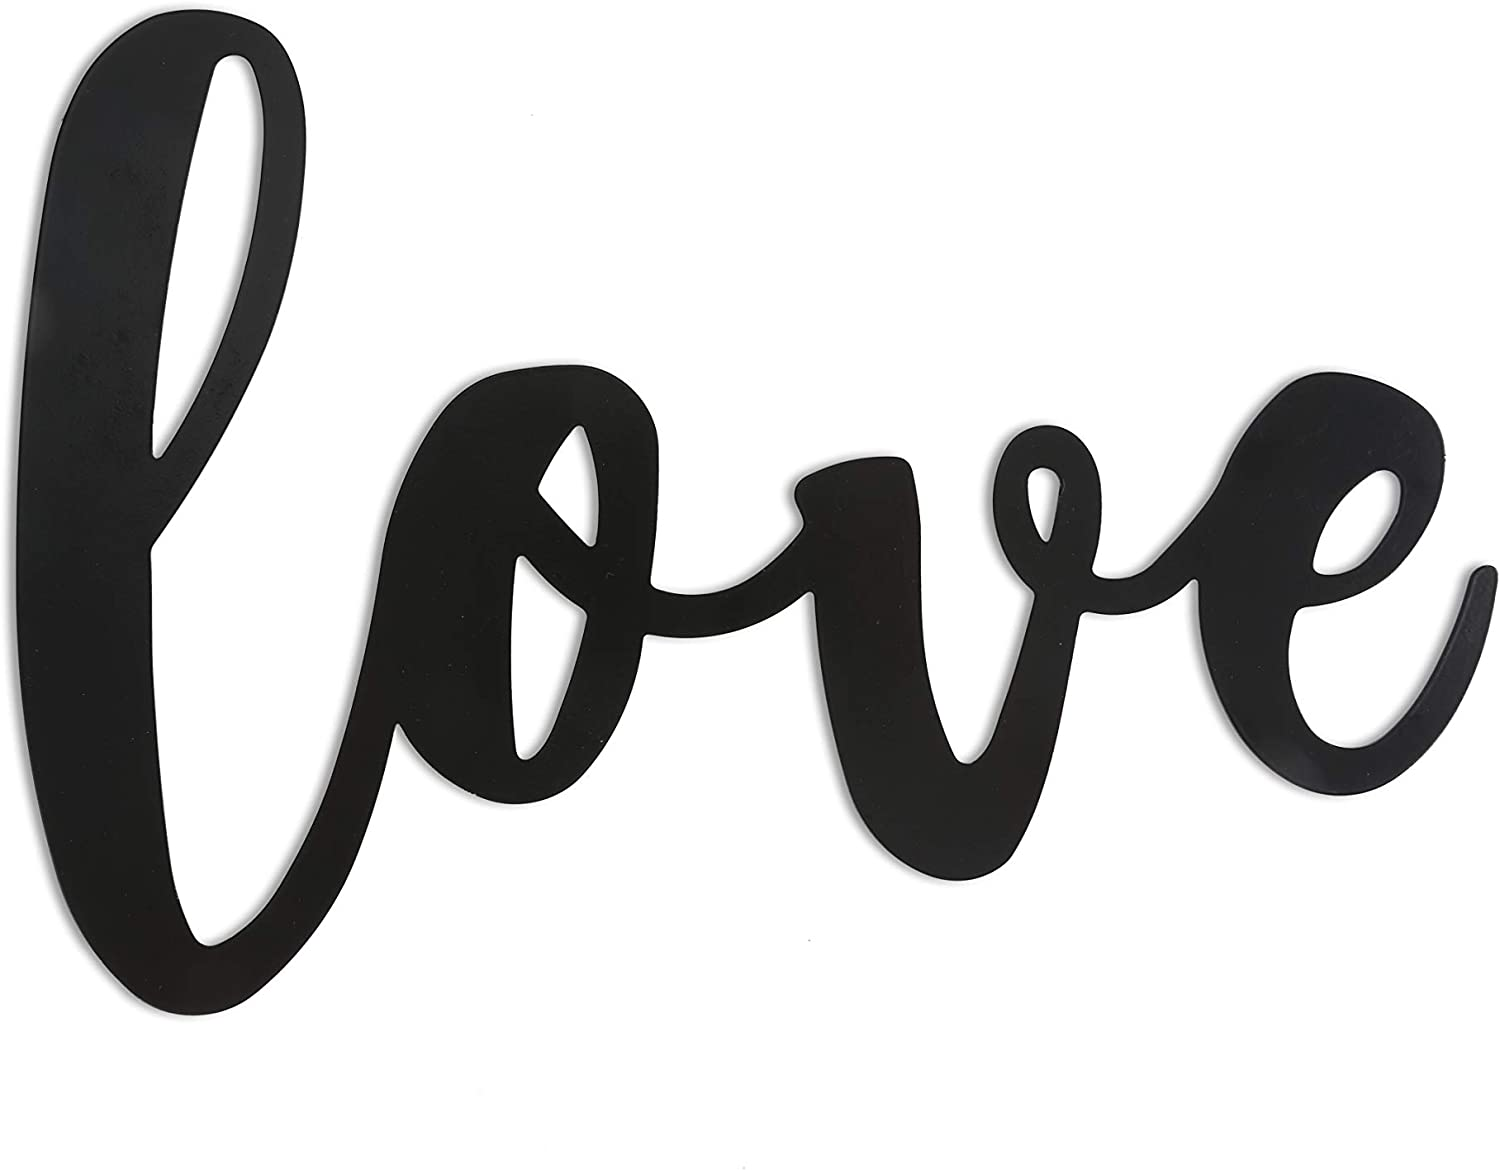 Scwhousi Metal Love Signs for Home Decor,Decorative Black Word Signs,15 x 7 inches